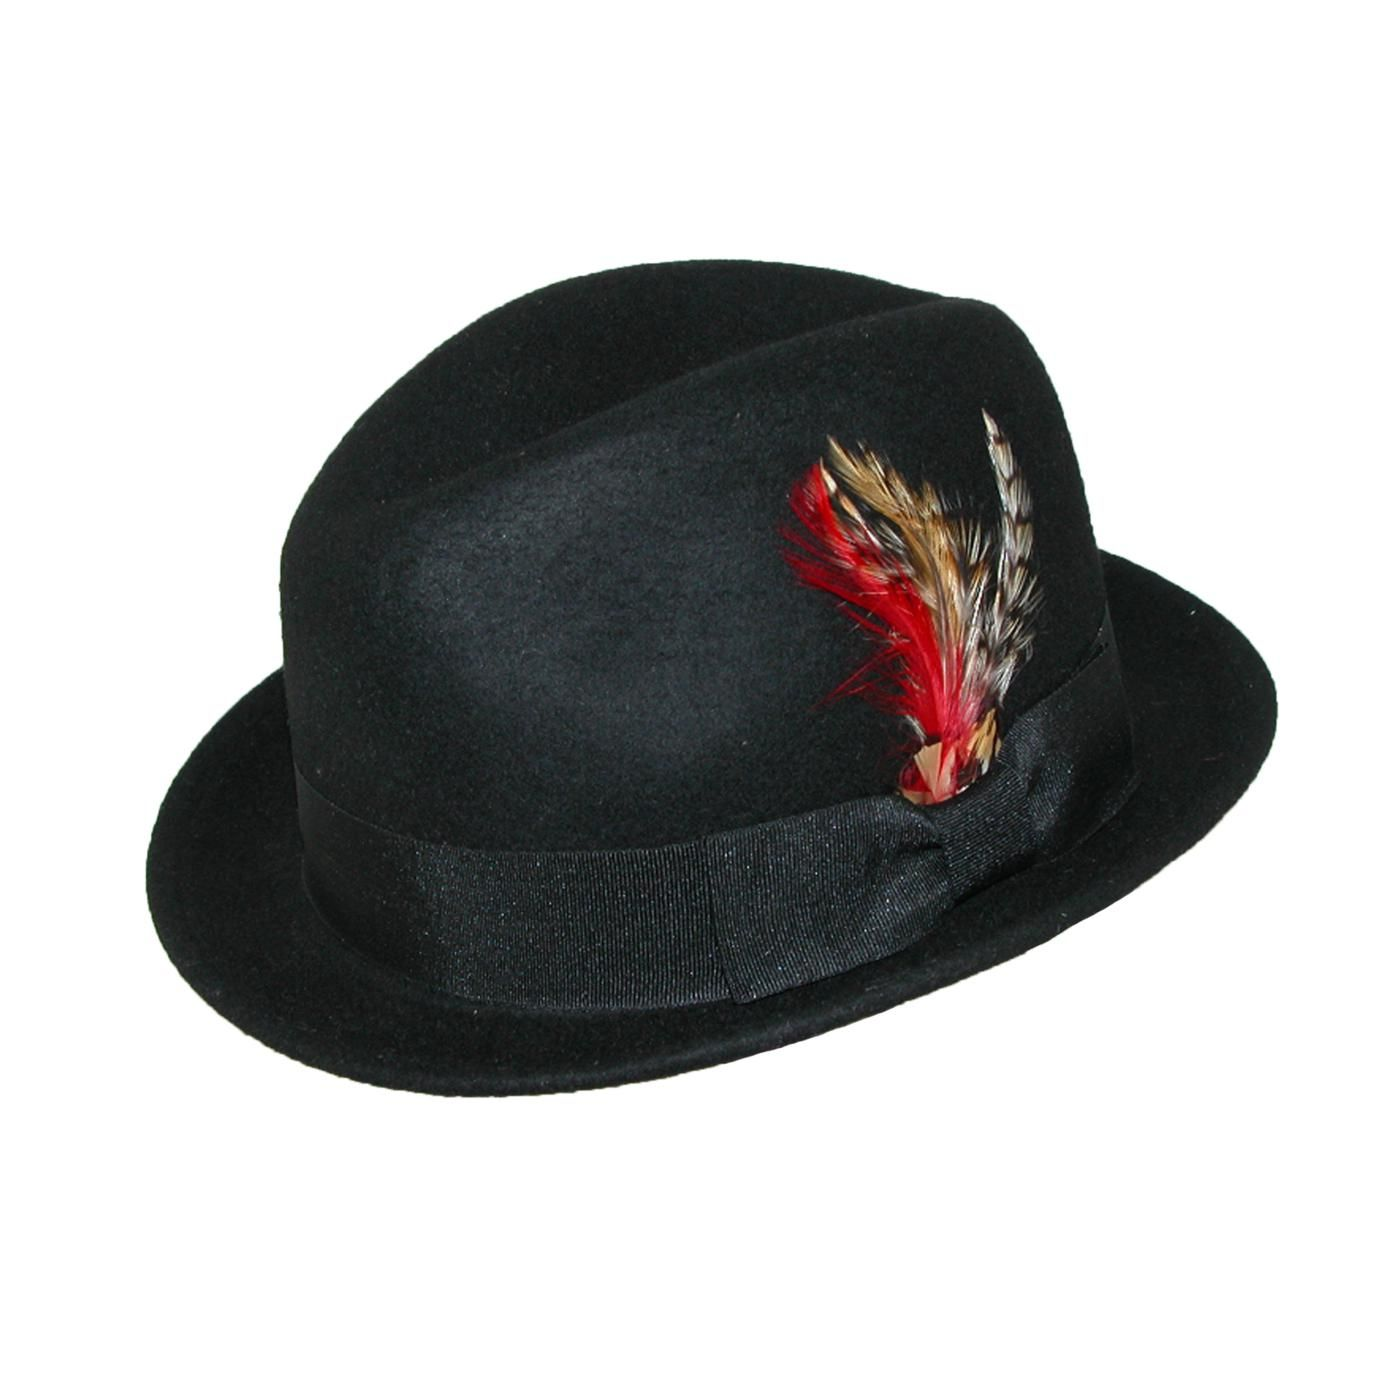 1f1e122fa3522 Jeanne Simmons Wool Felt Fedora with Feather. A classic and timeless style  you can t go wrong with a wool fedora.  27.95